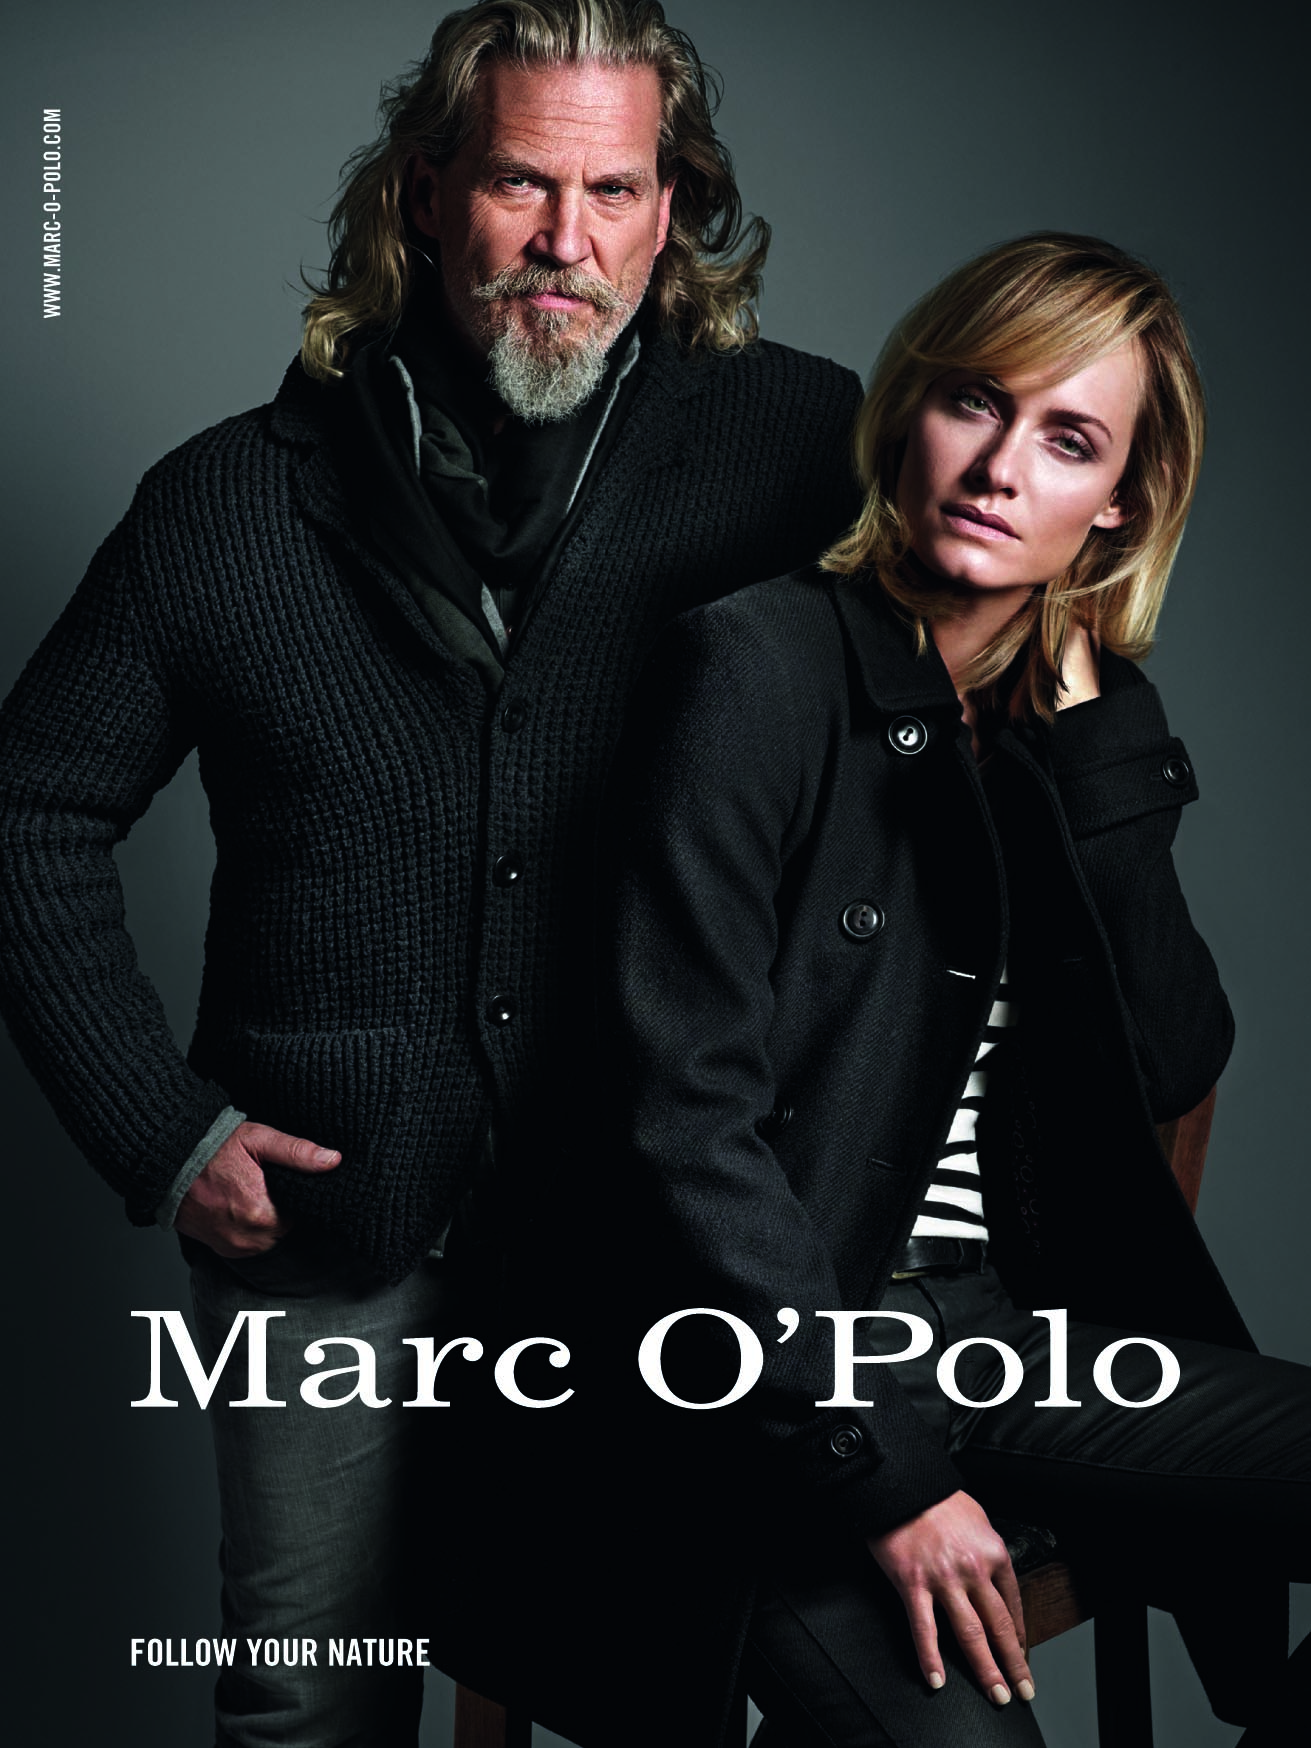 jeff bridges amber valletta for marc o polo the finger. Black Bedroom Furniture Sets. Home Design Ideas